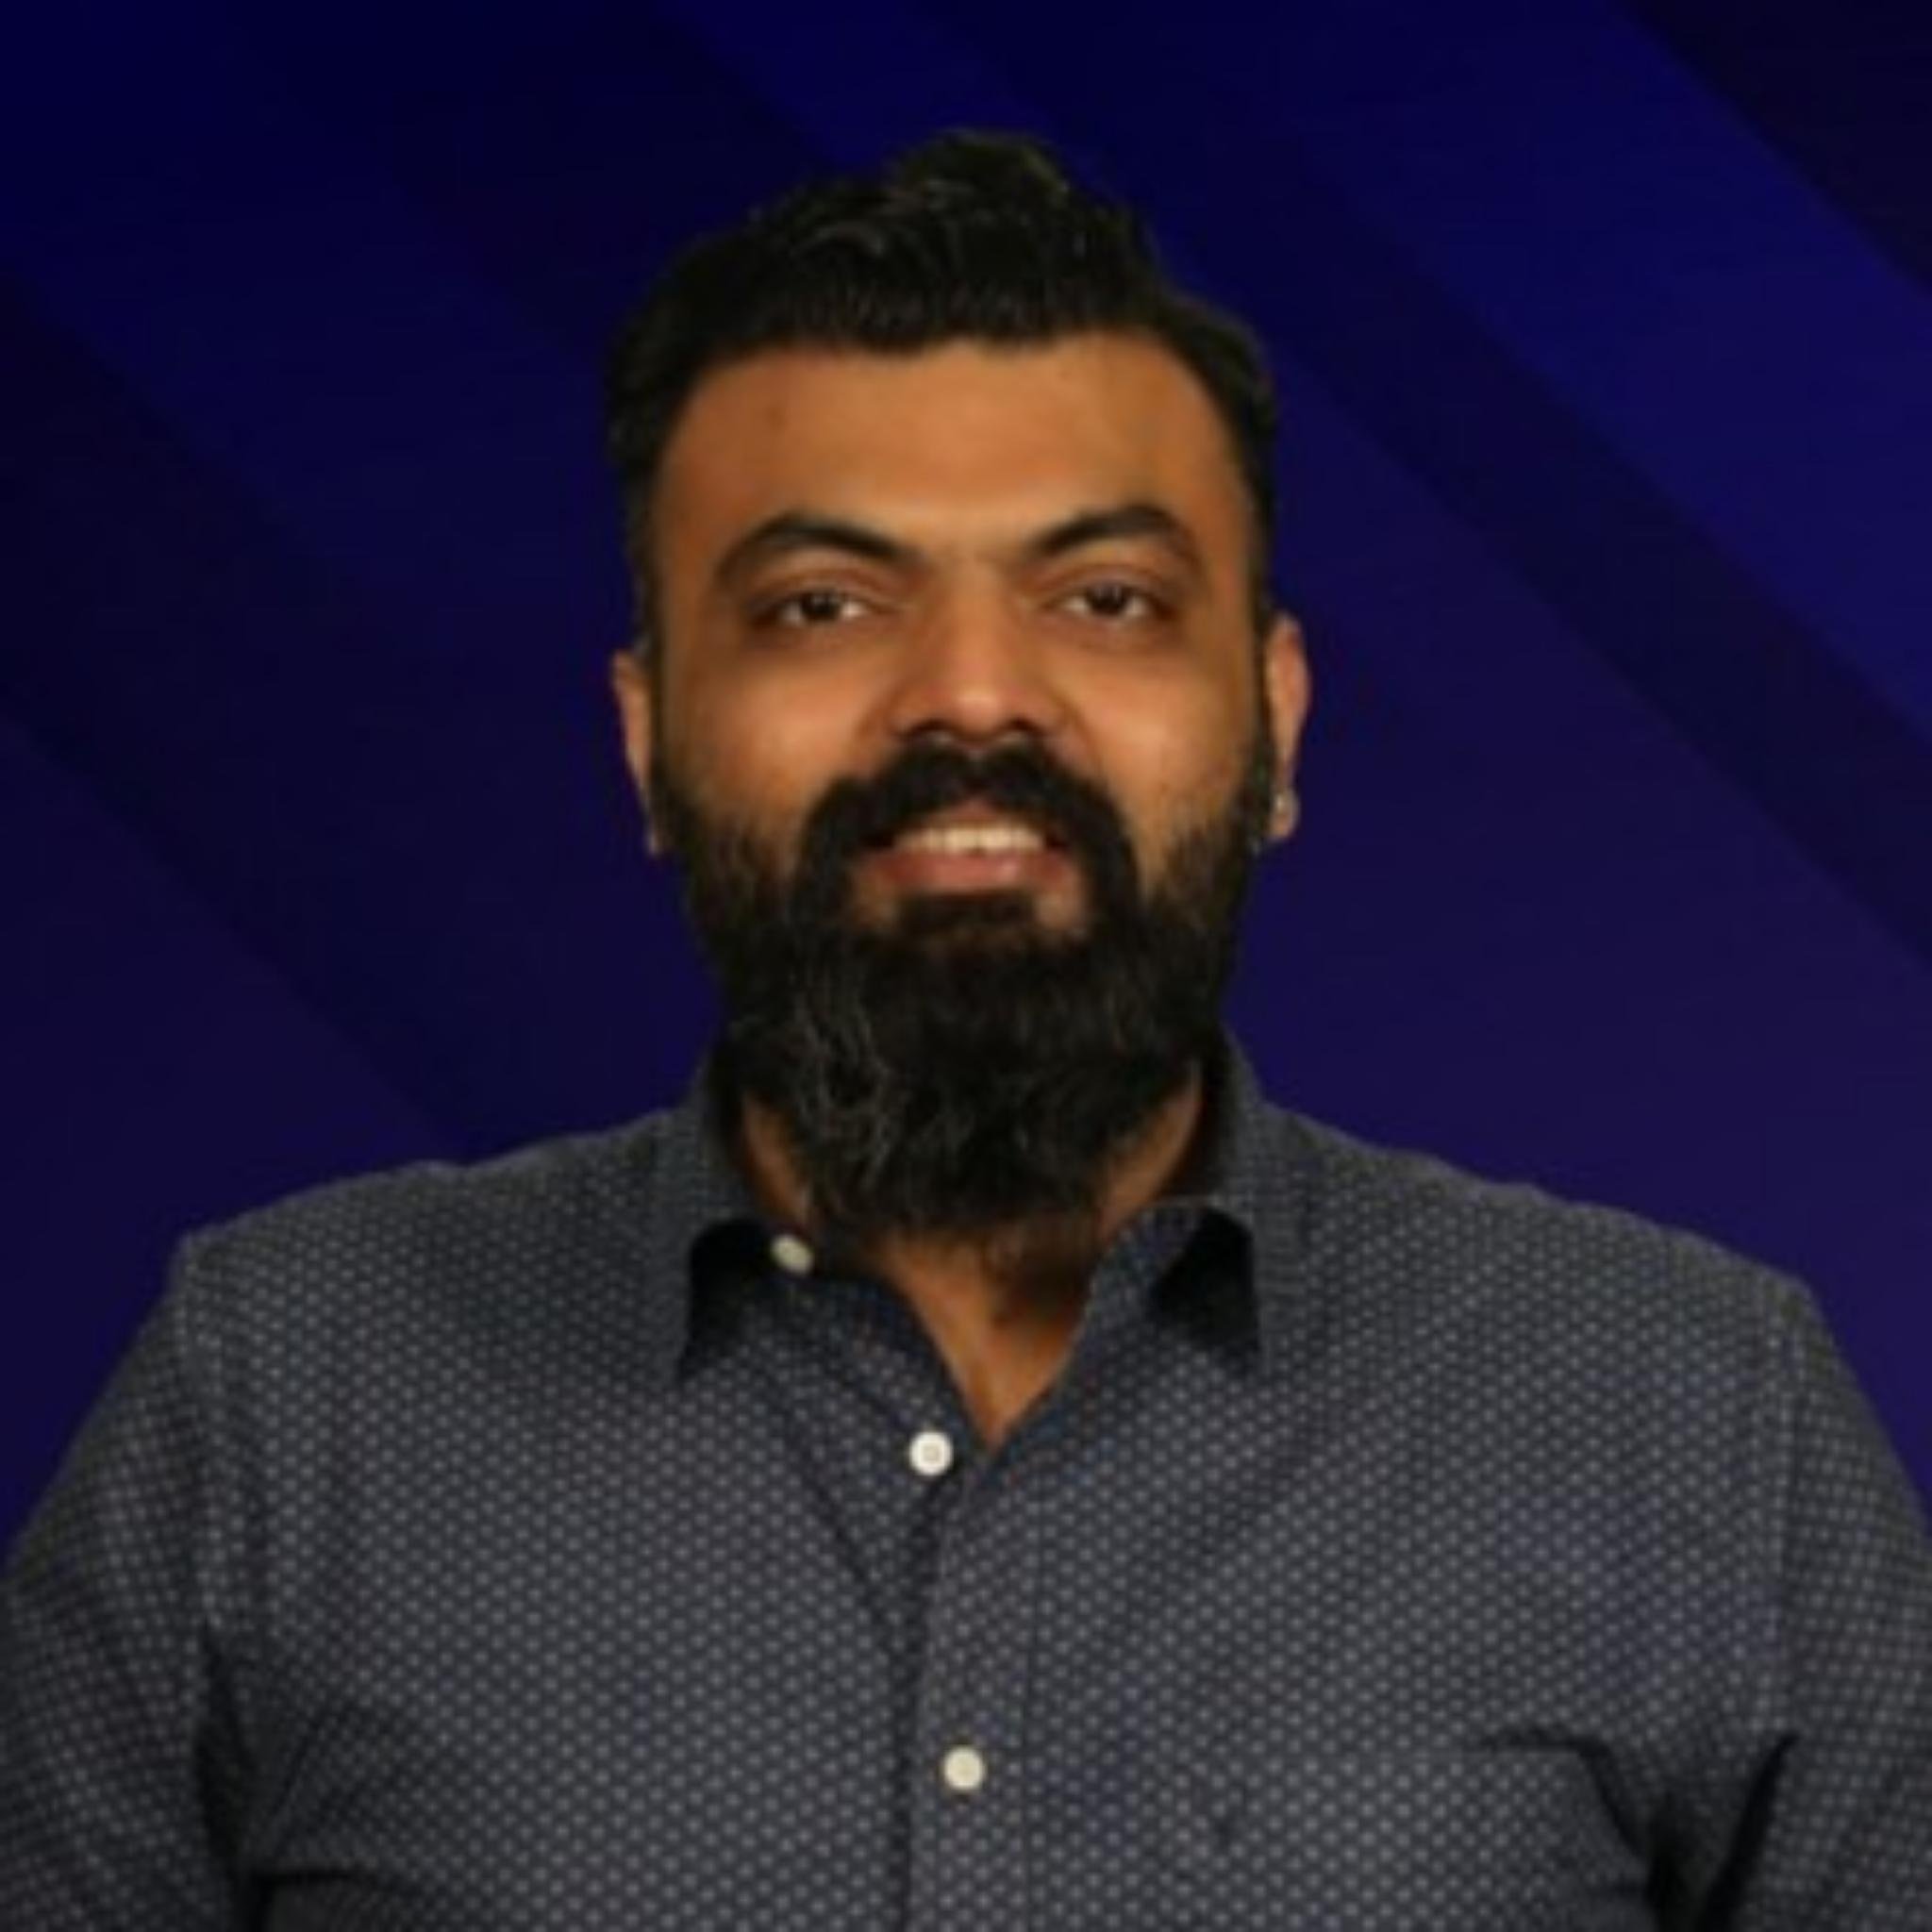 https://www.indiantelevision.com/sites/default/files/styles/230x230/public/images/tv-images/2021/07/26/photogrid_plus_1627286849119.jpg?itok=yiTksgLP